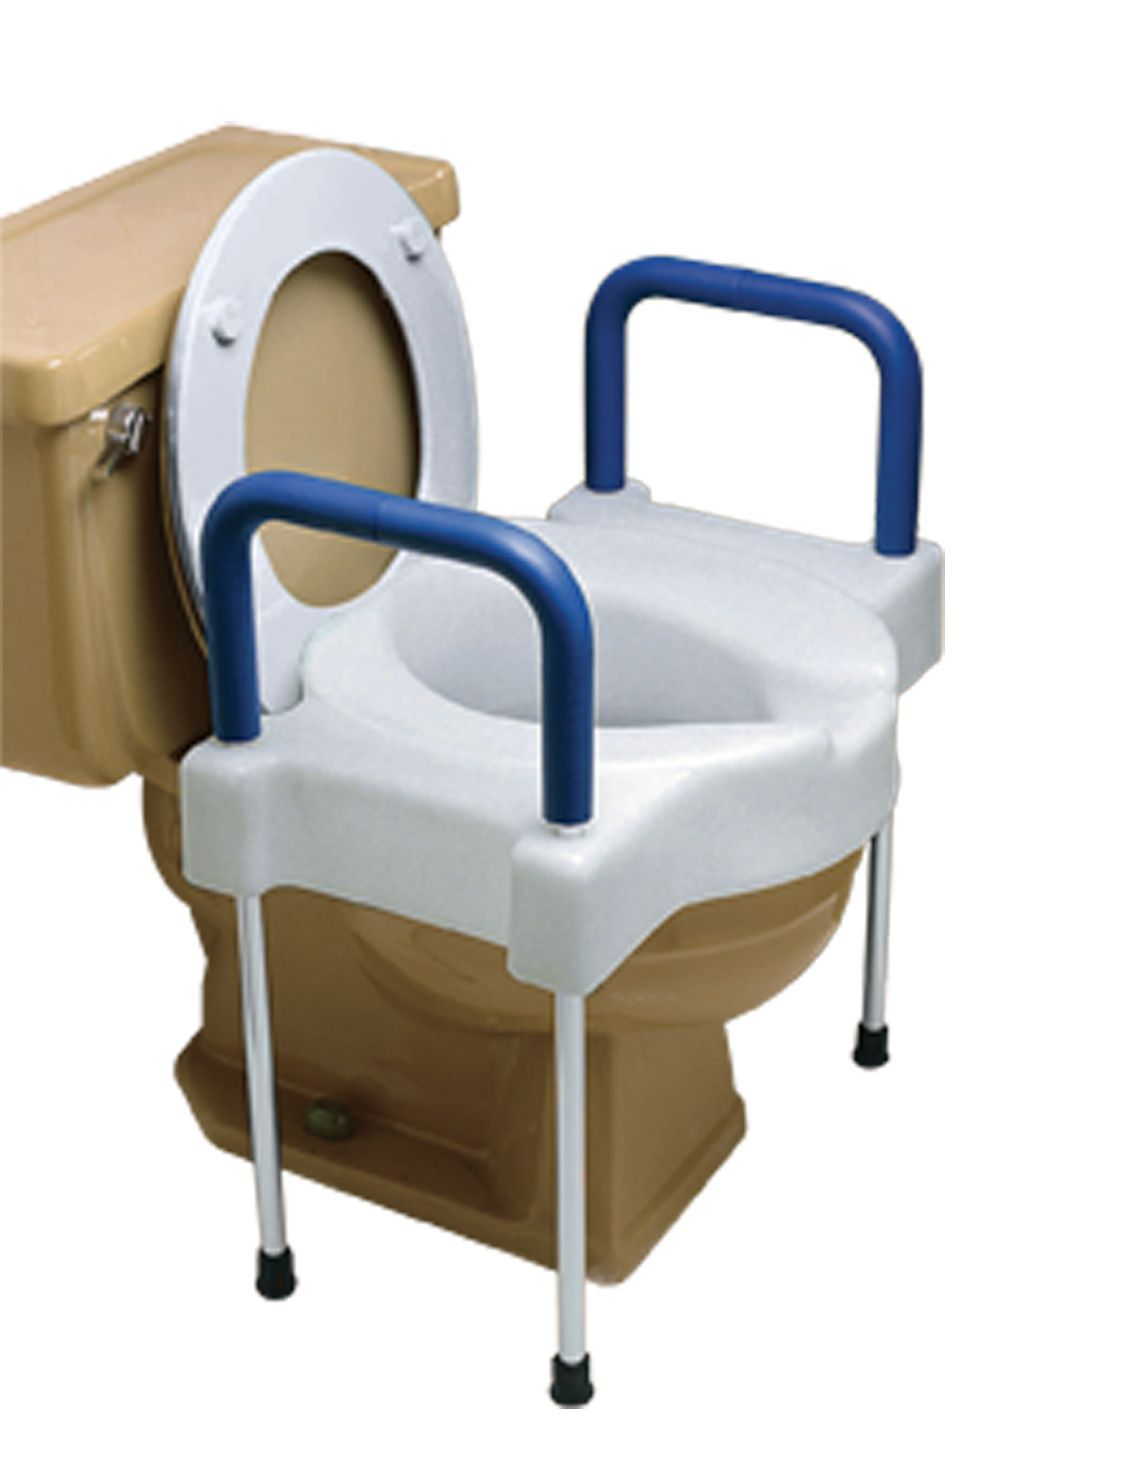 Extra Wide Tall Ette Elevated Toilet Seat With Arm Rests